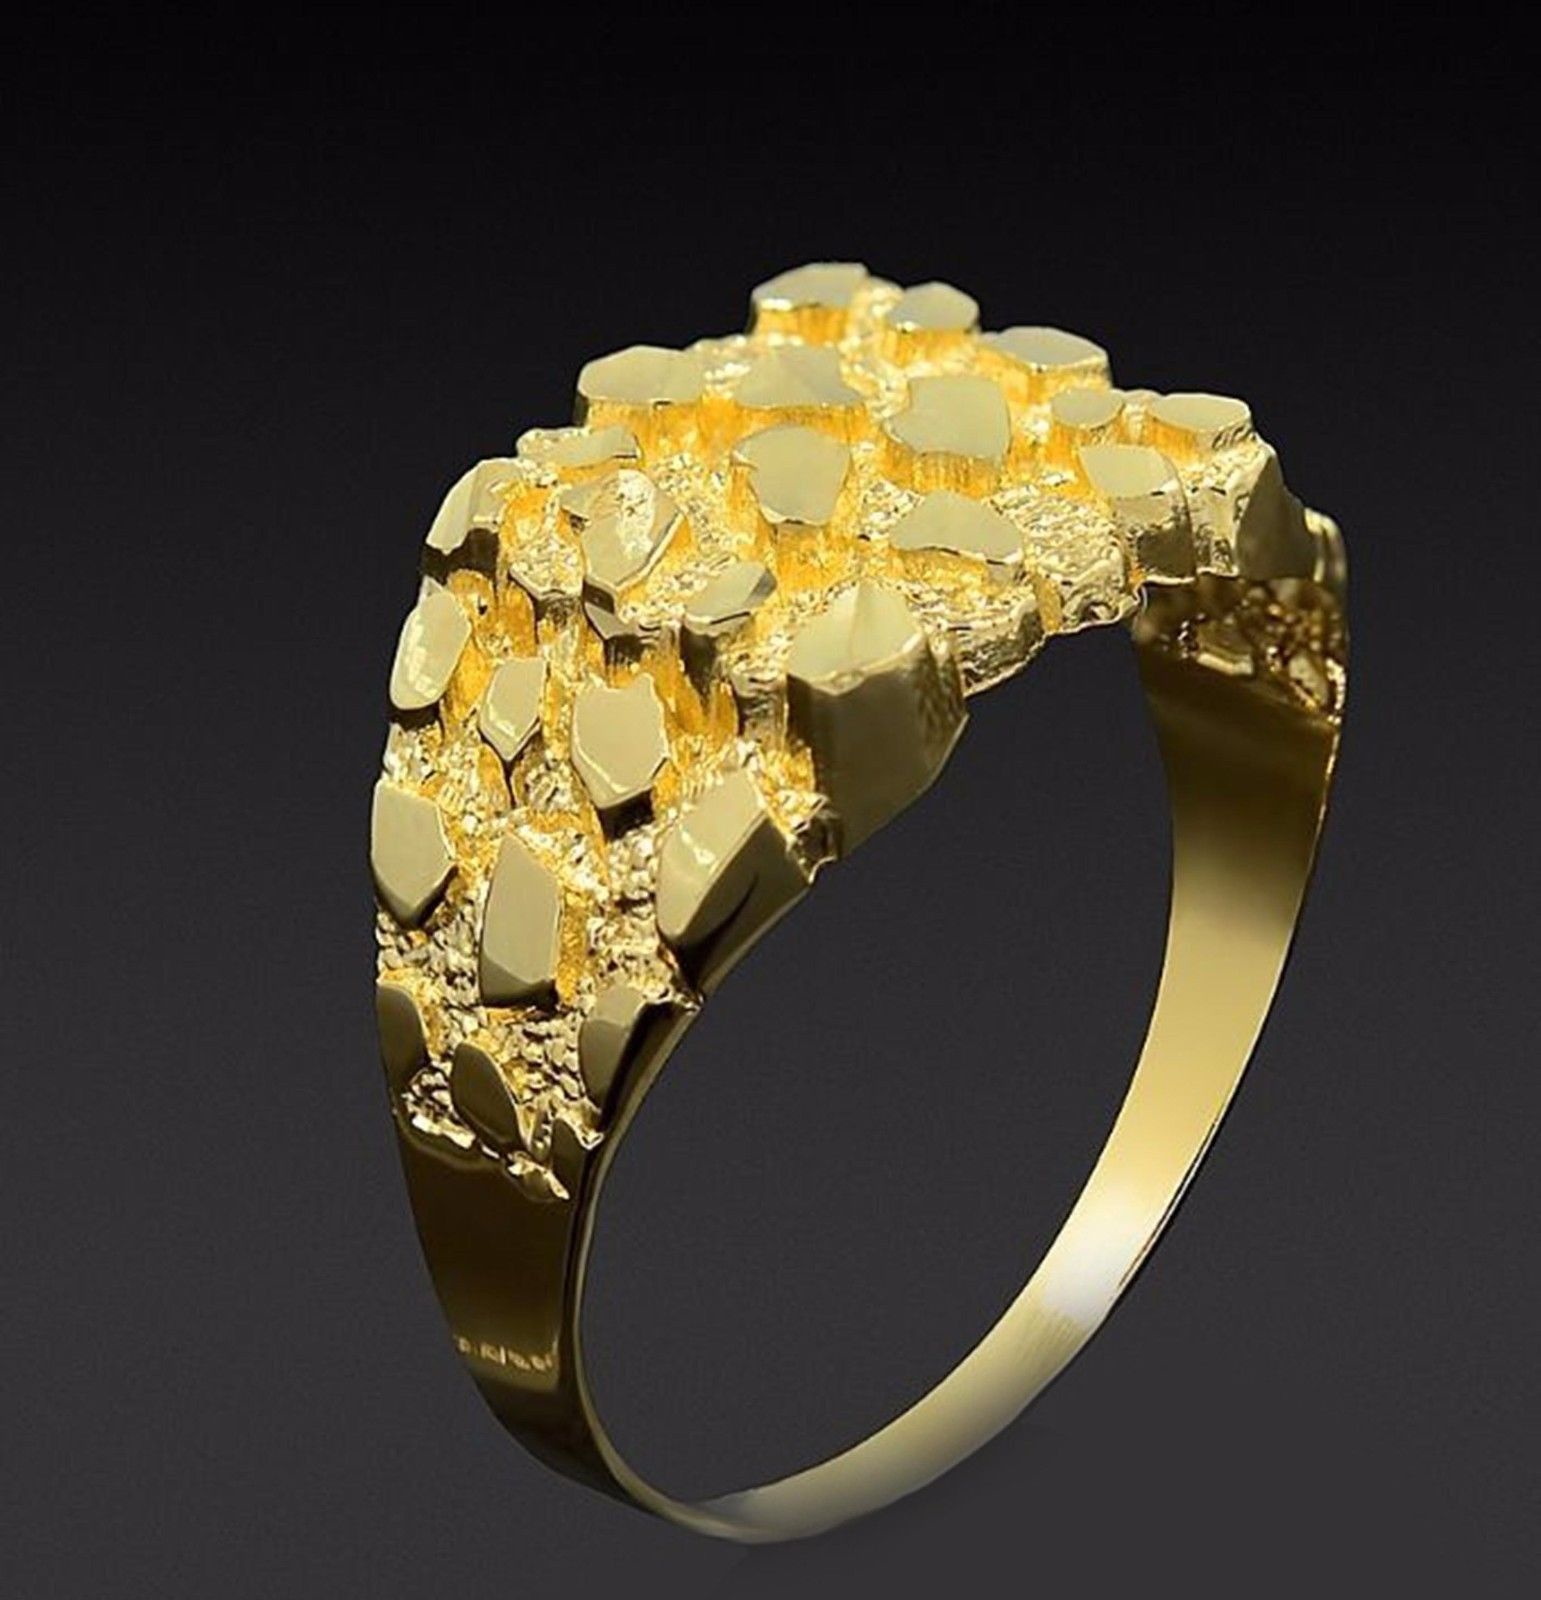 Men S 10k Yellow Gold Nugget Ring 3 0 G Mens Gold Bracelets Gold Nugget Ring Yellow Gold Diamond Engagement Ring